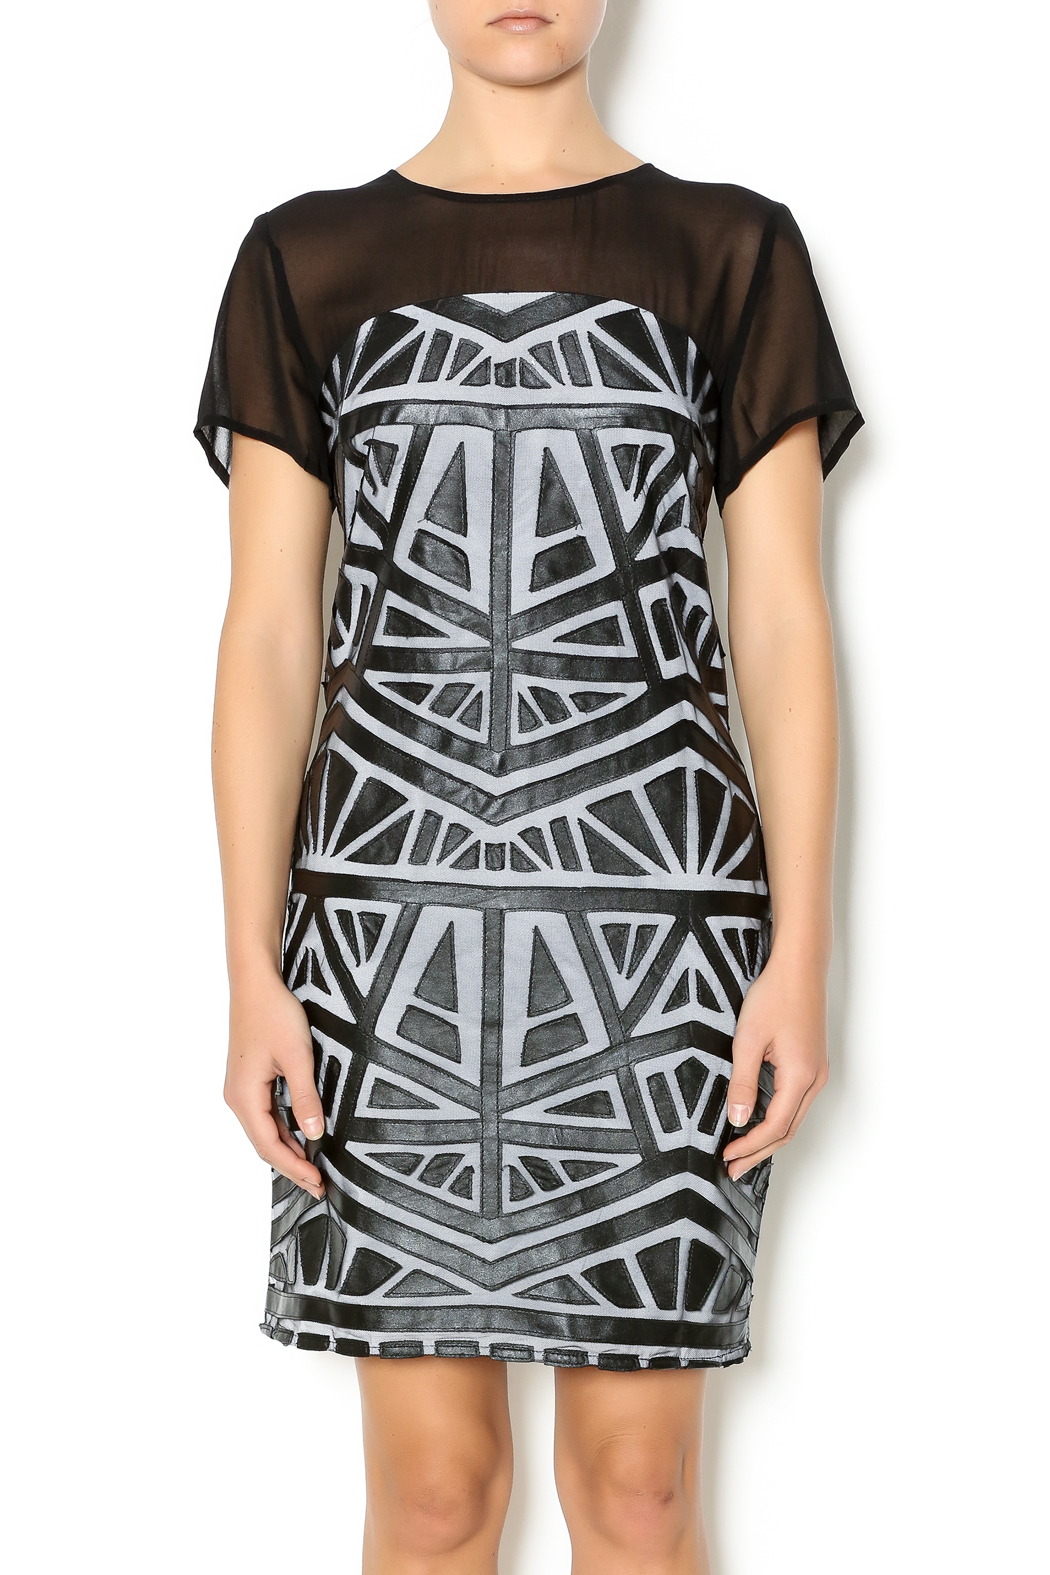 Lumiere Black White Midi Dress - Main Image